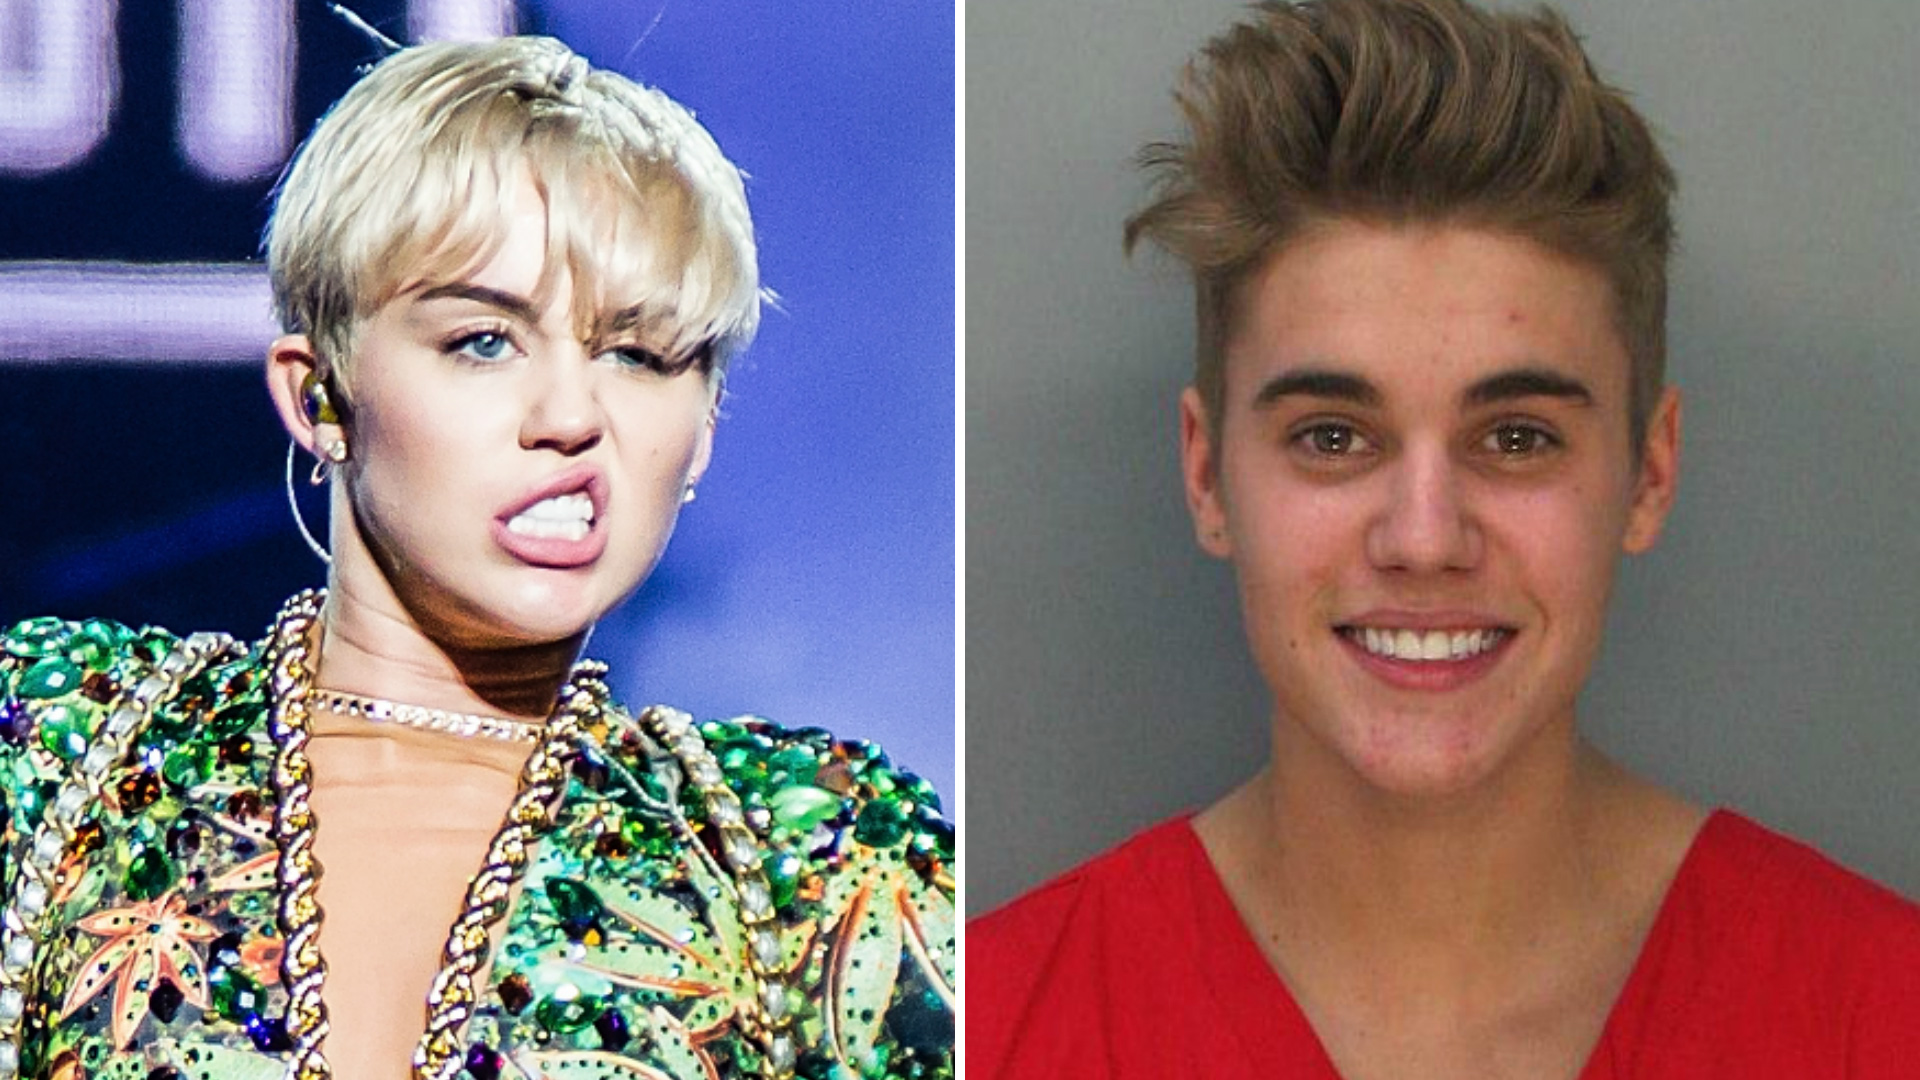 Miley Cyrus vs. Justin Bieber: Who's had the most controversial year so far?